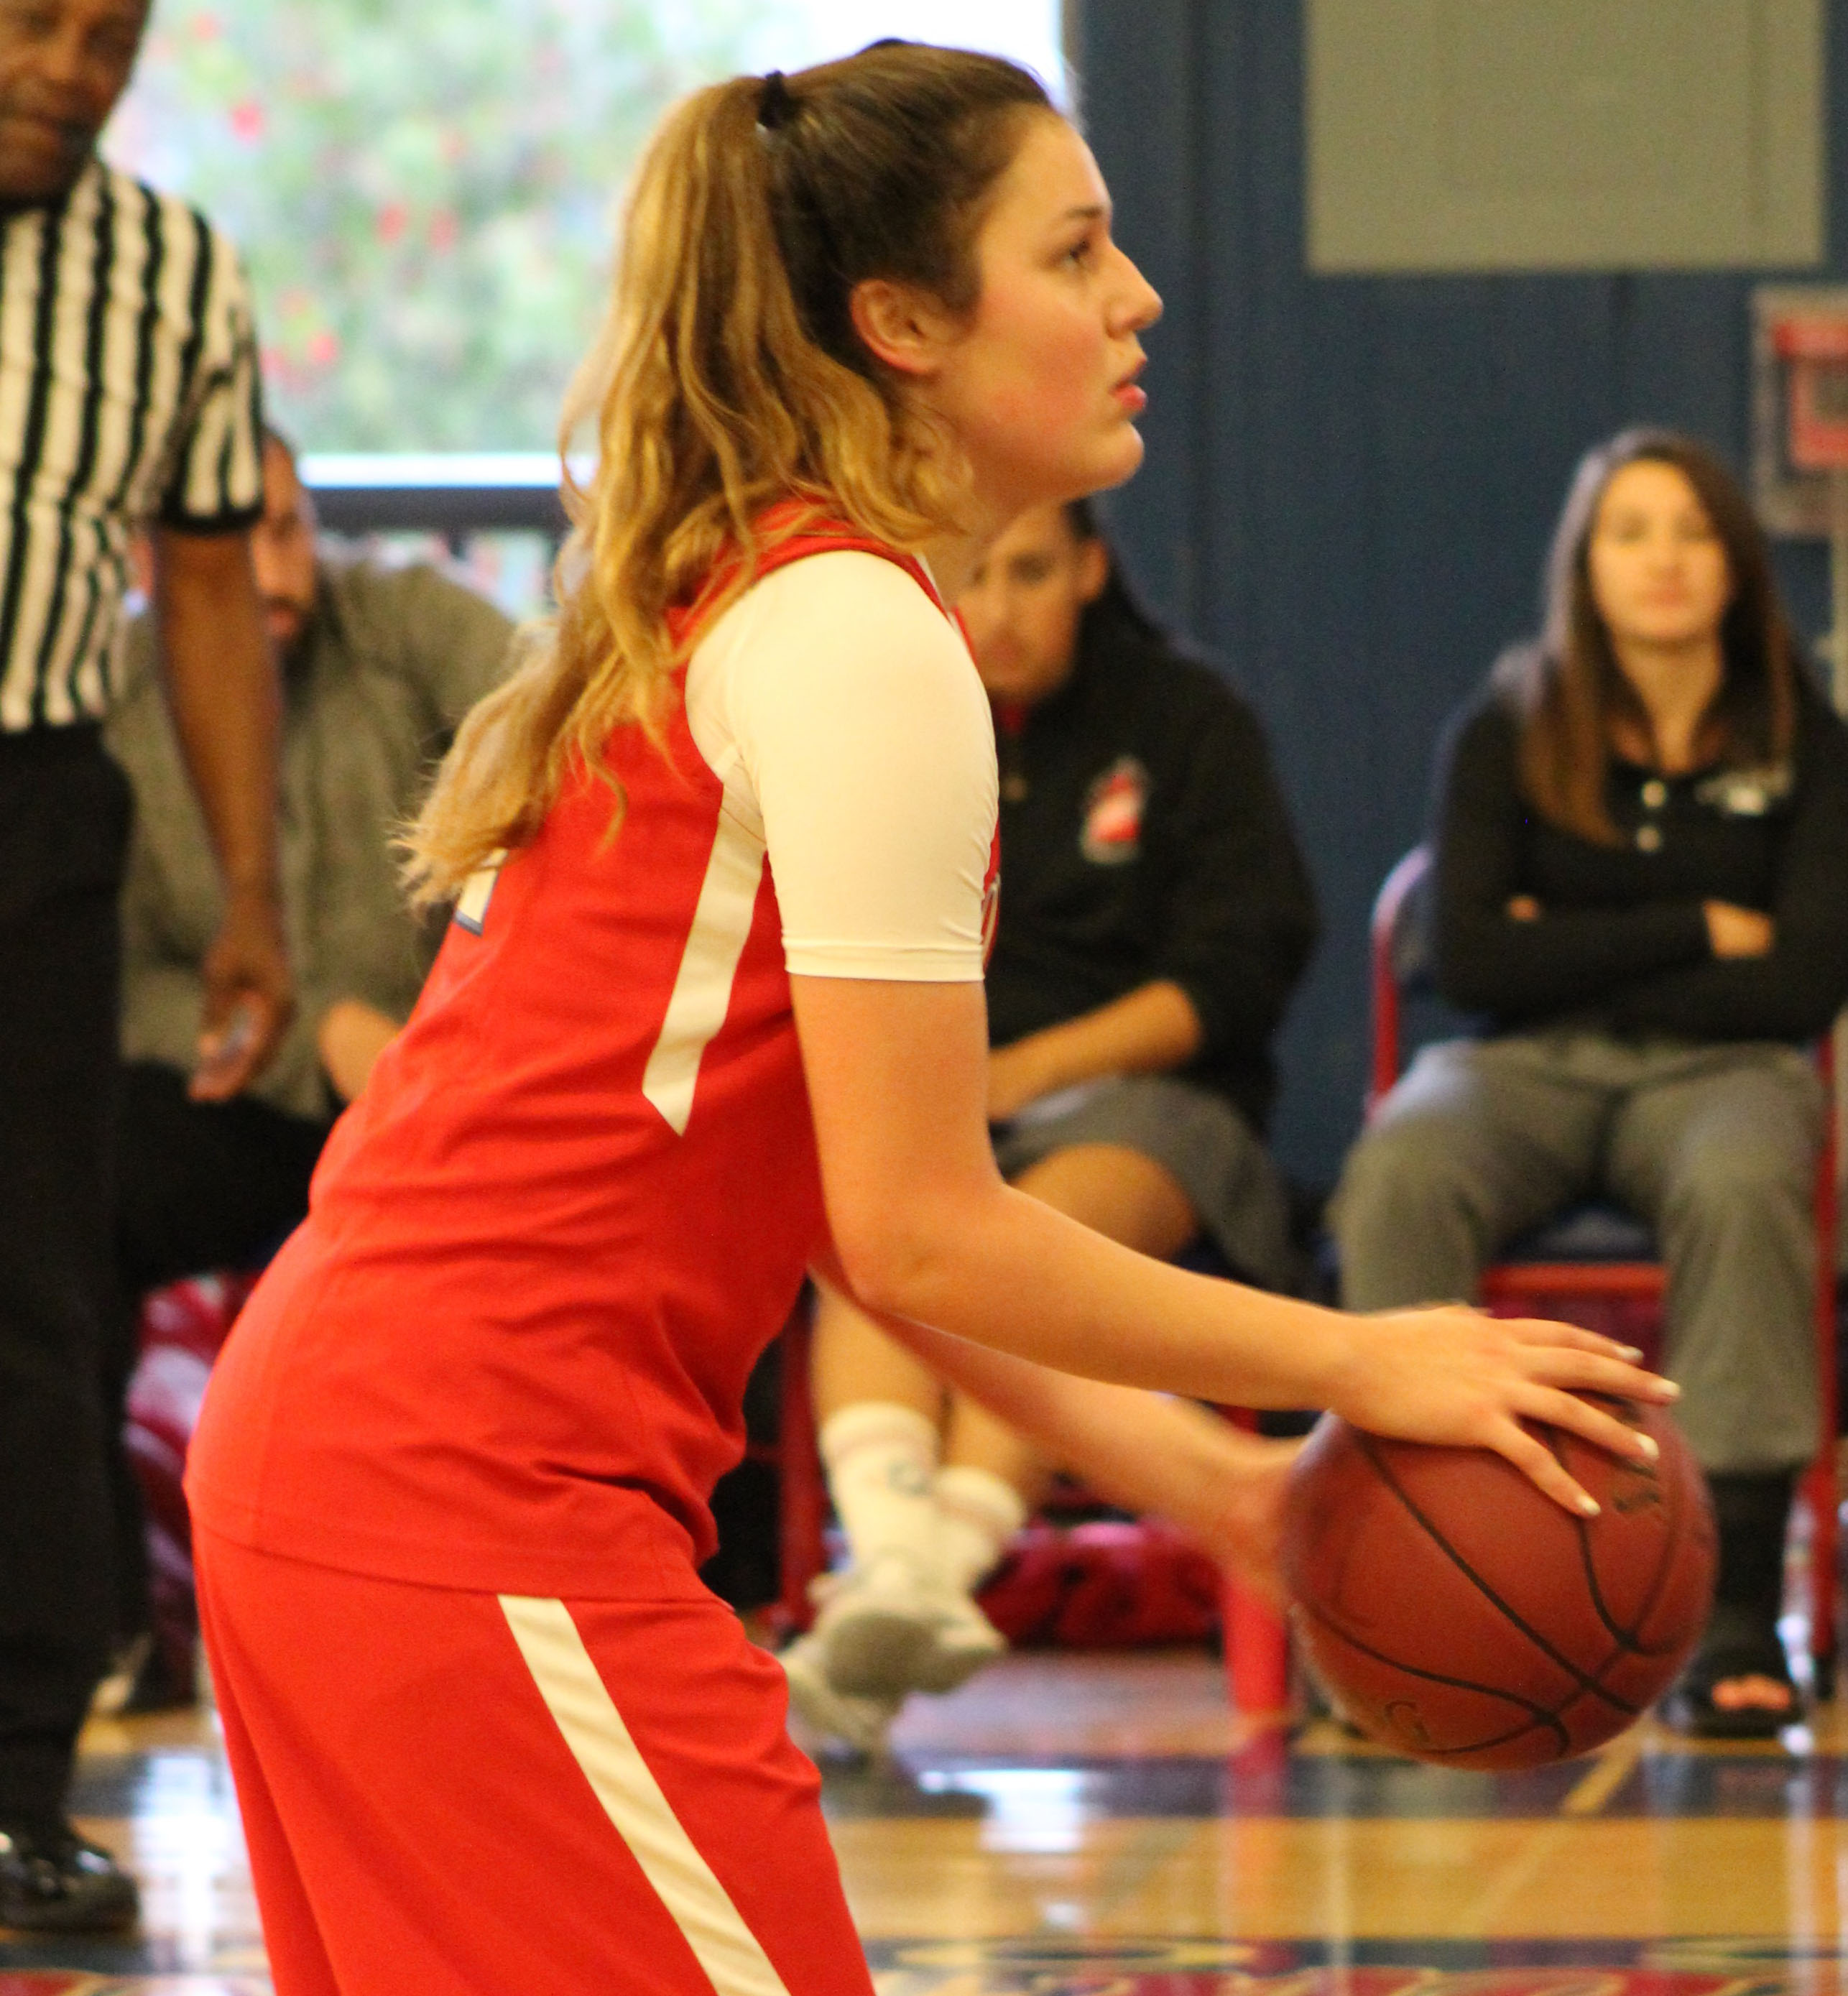 Senior Alyssa Alvarez prepares to take a free throw during a scrimmage against Mt. Tamalpais. Alvarez is a four-year varsity player and one of three senior captains. The team has already played in the Marin Academy Invitational Tournament and plans on playing in three more tournaments before the season starts.